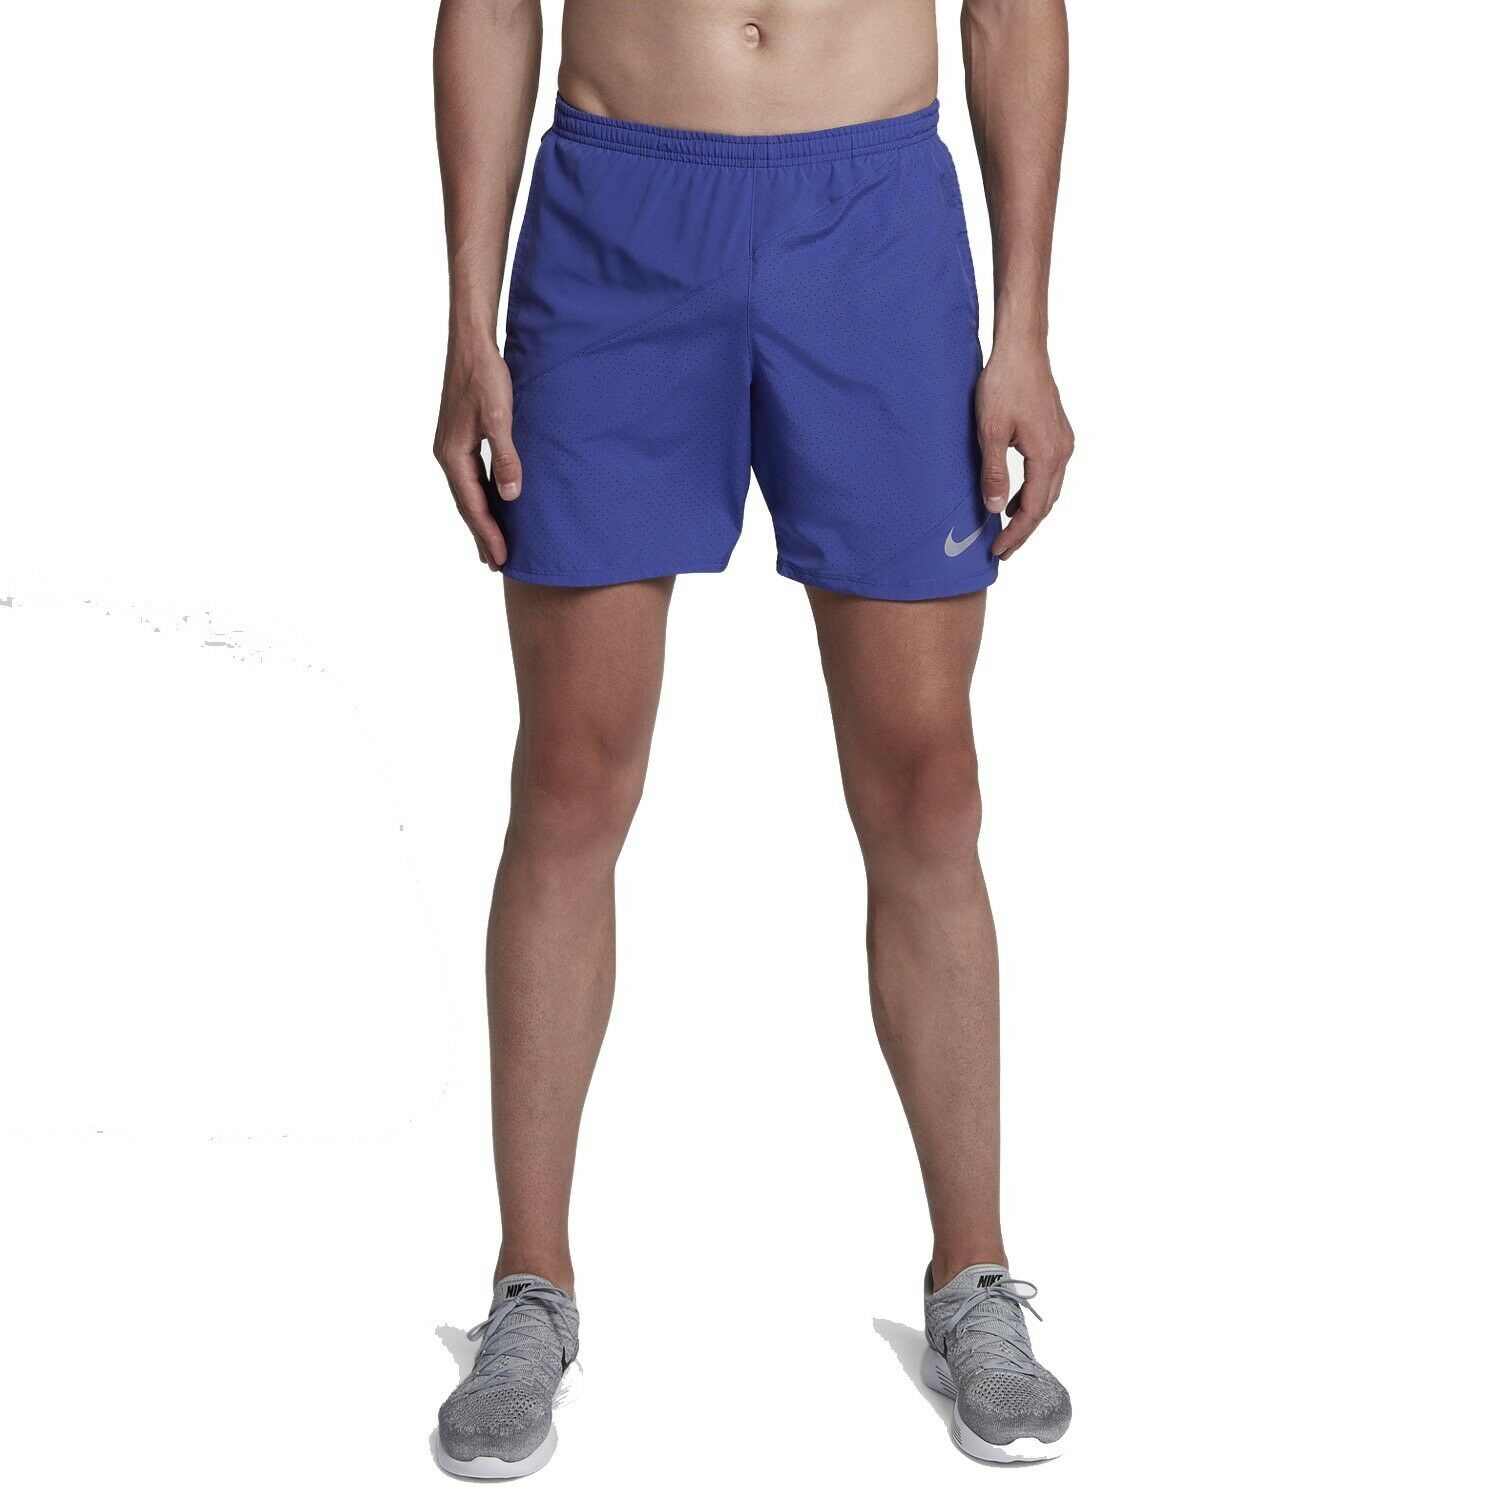 NIKE Flex Distance 2-in-1 Men's 7   Running Shorts 834213-510 bluee Size S New